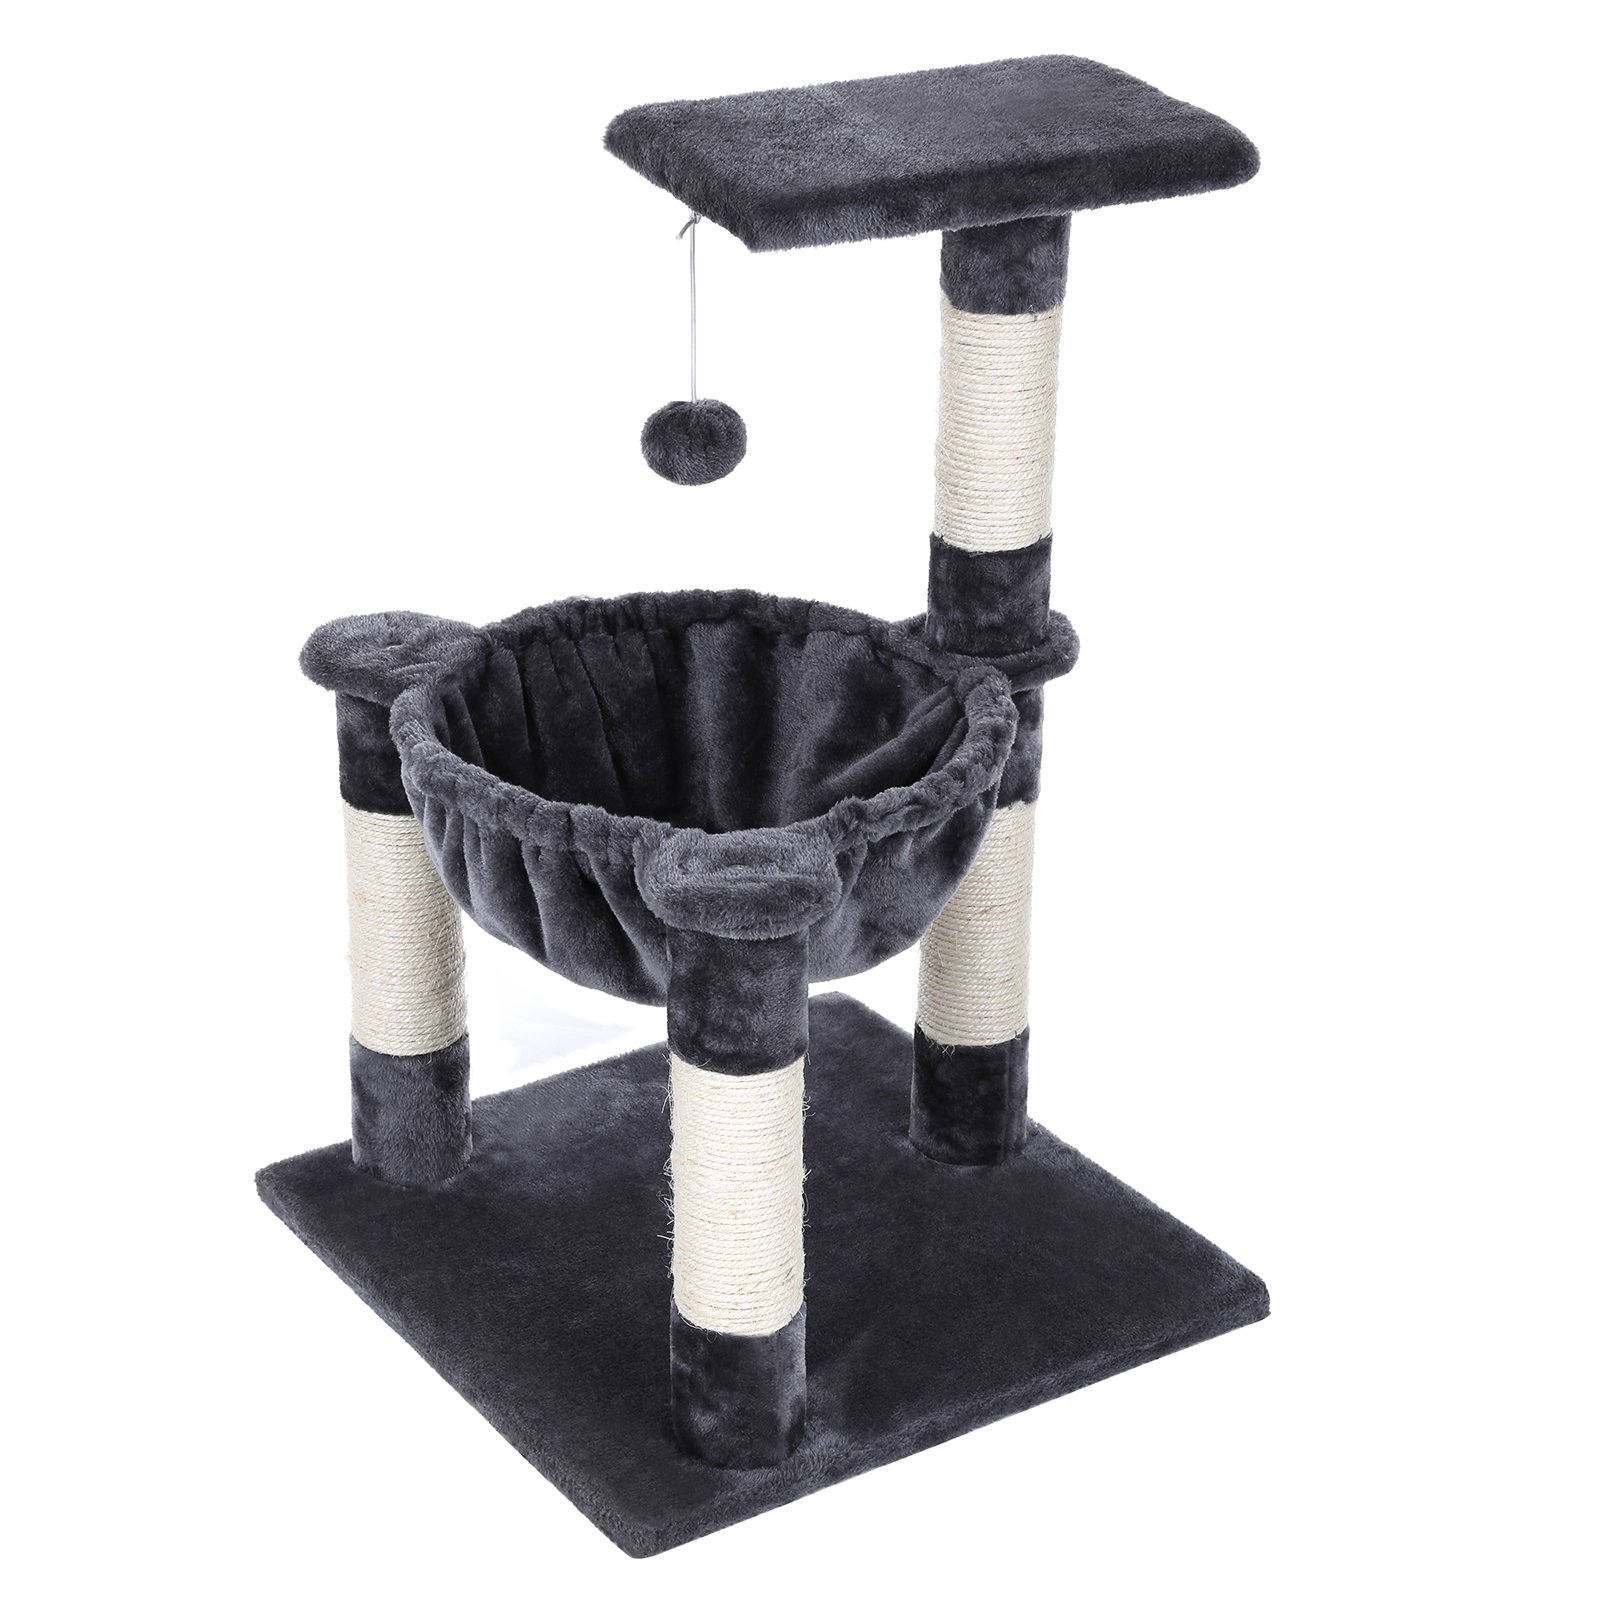 SONGMICS Cat Tree Condo House with Sisal Scratch Posts Kitty Furniture Grey